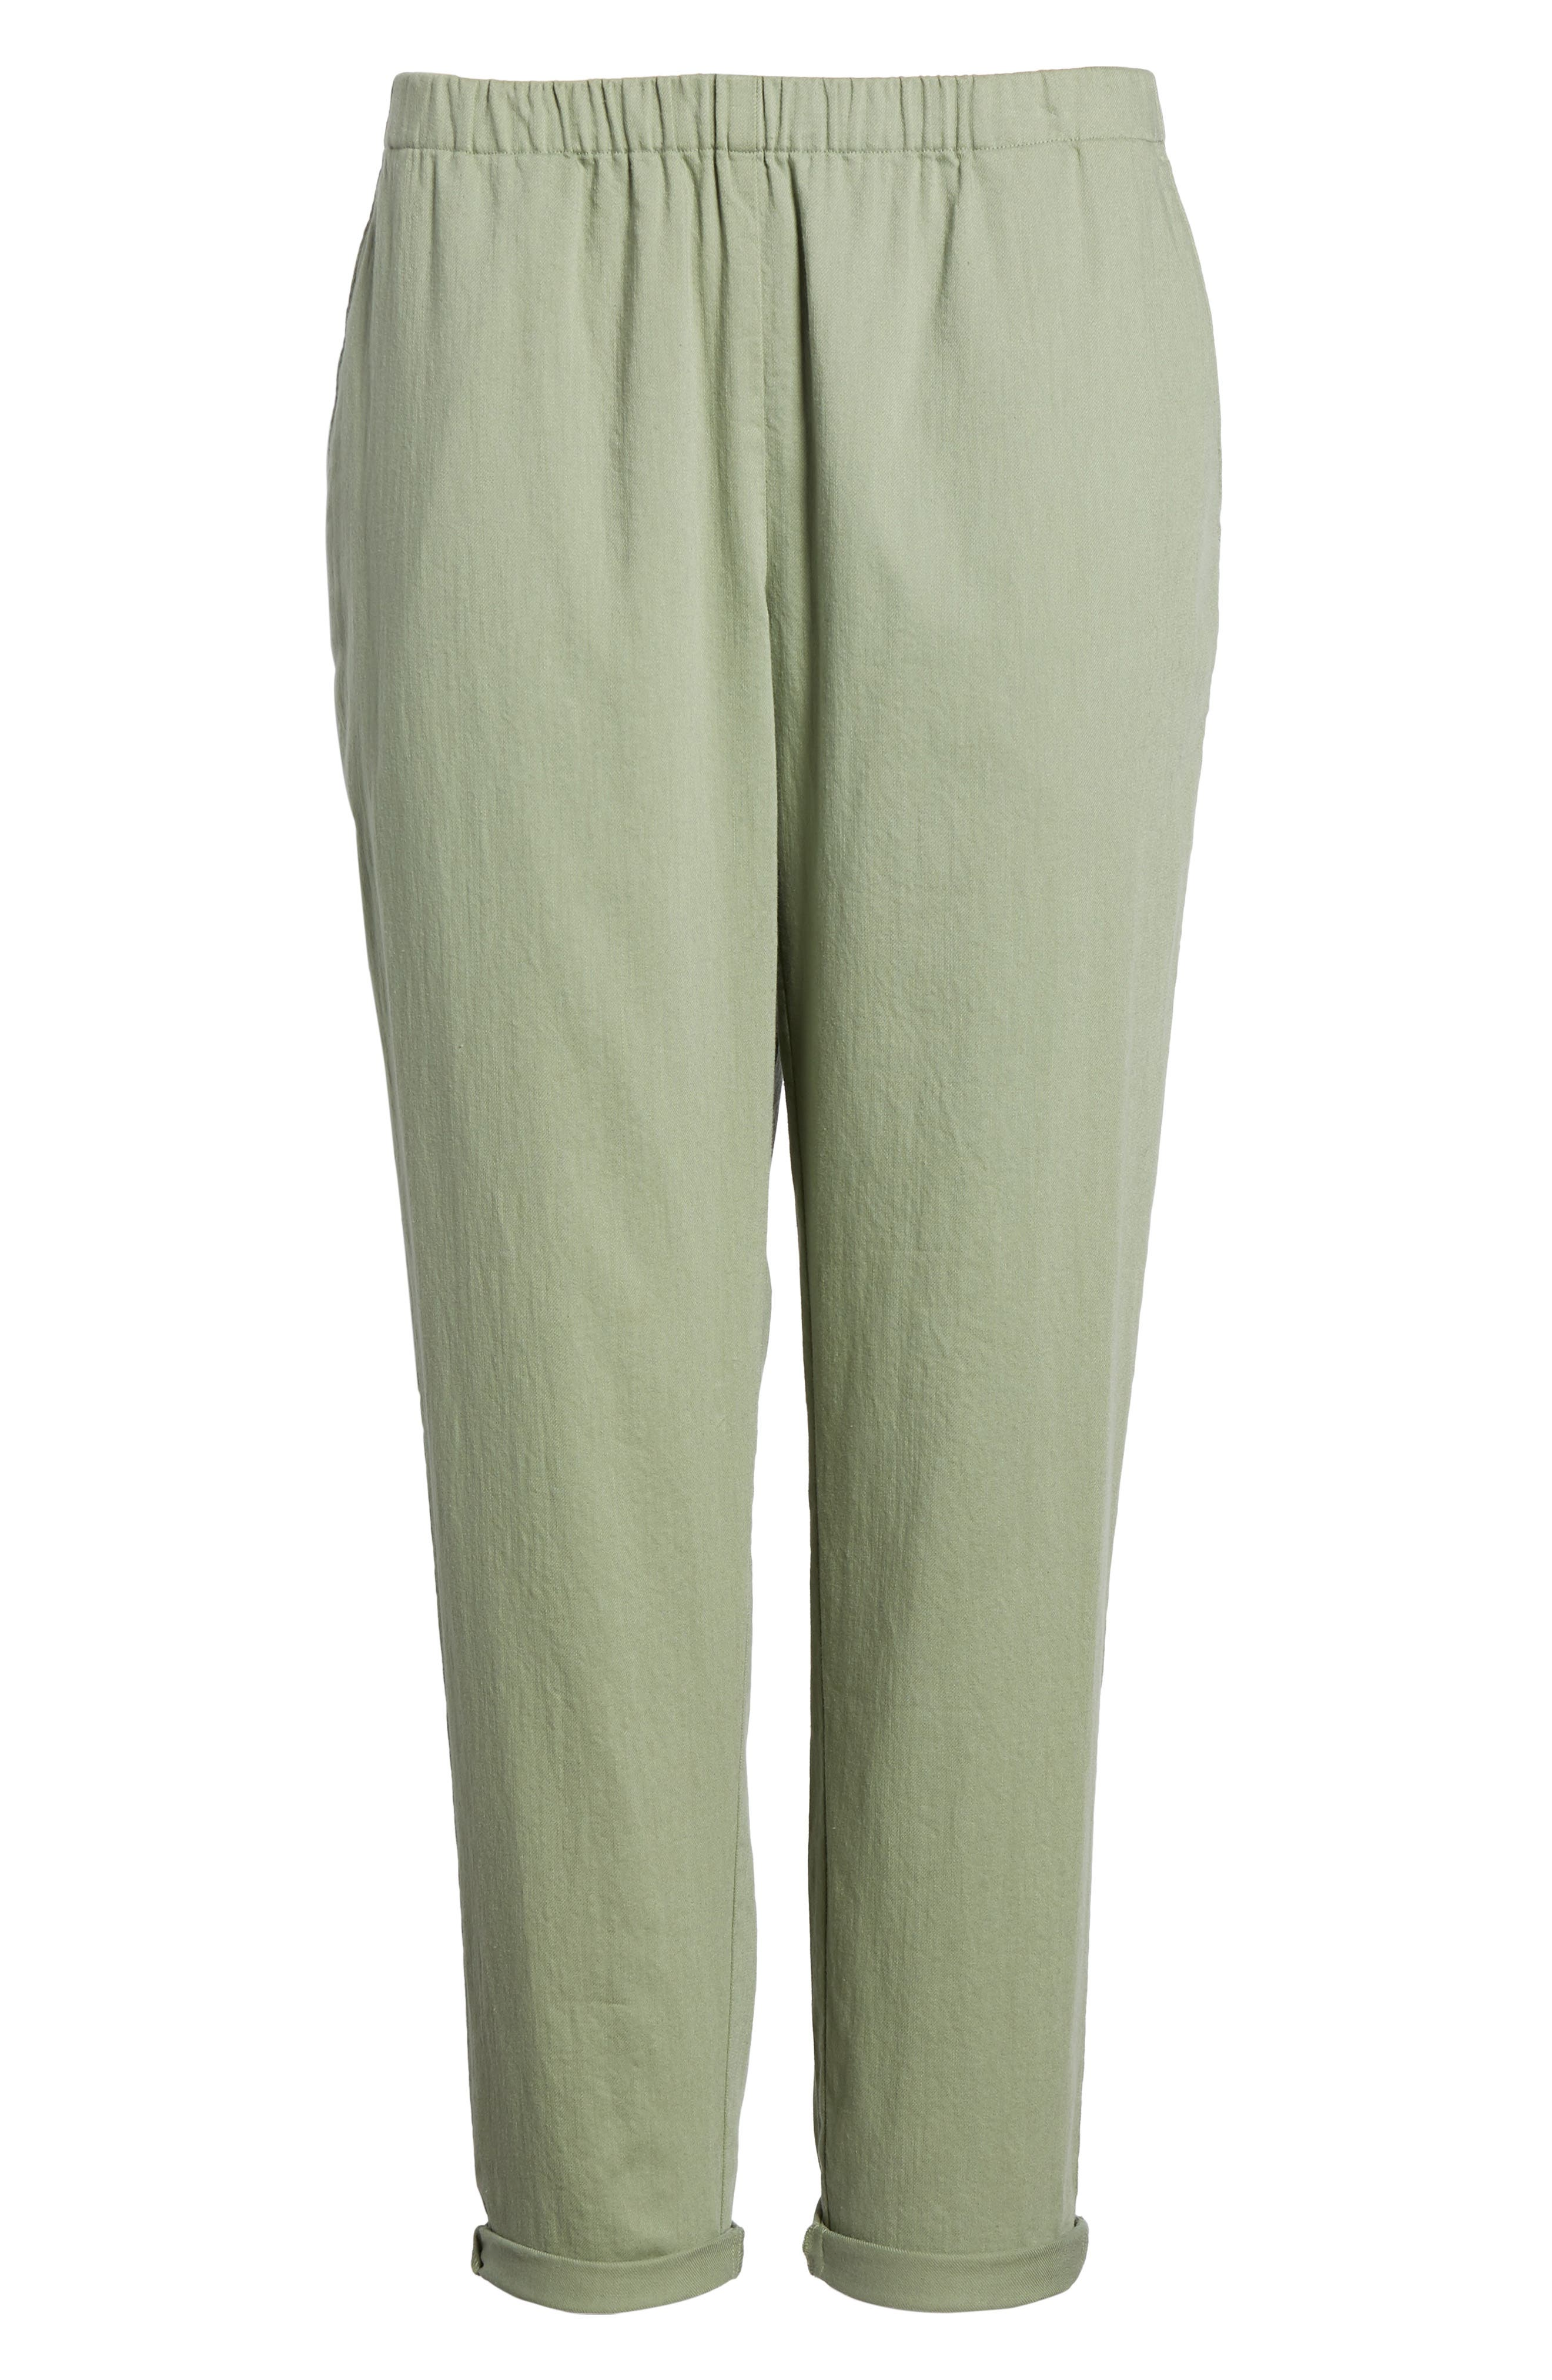 Organic Cotton Tapered Ankle Pants,                             Alternate thumbnail 7, color,                             Glen